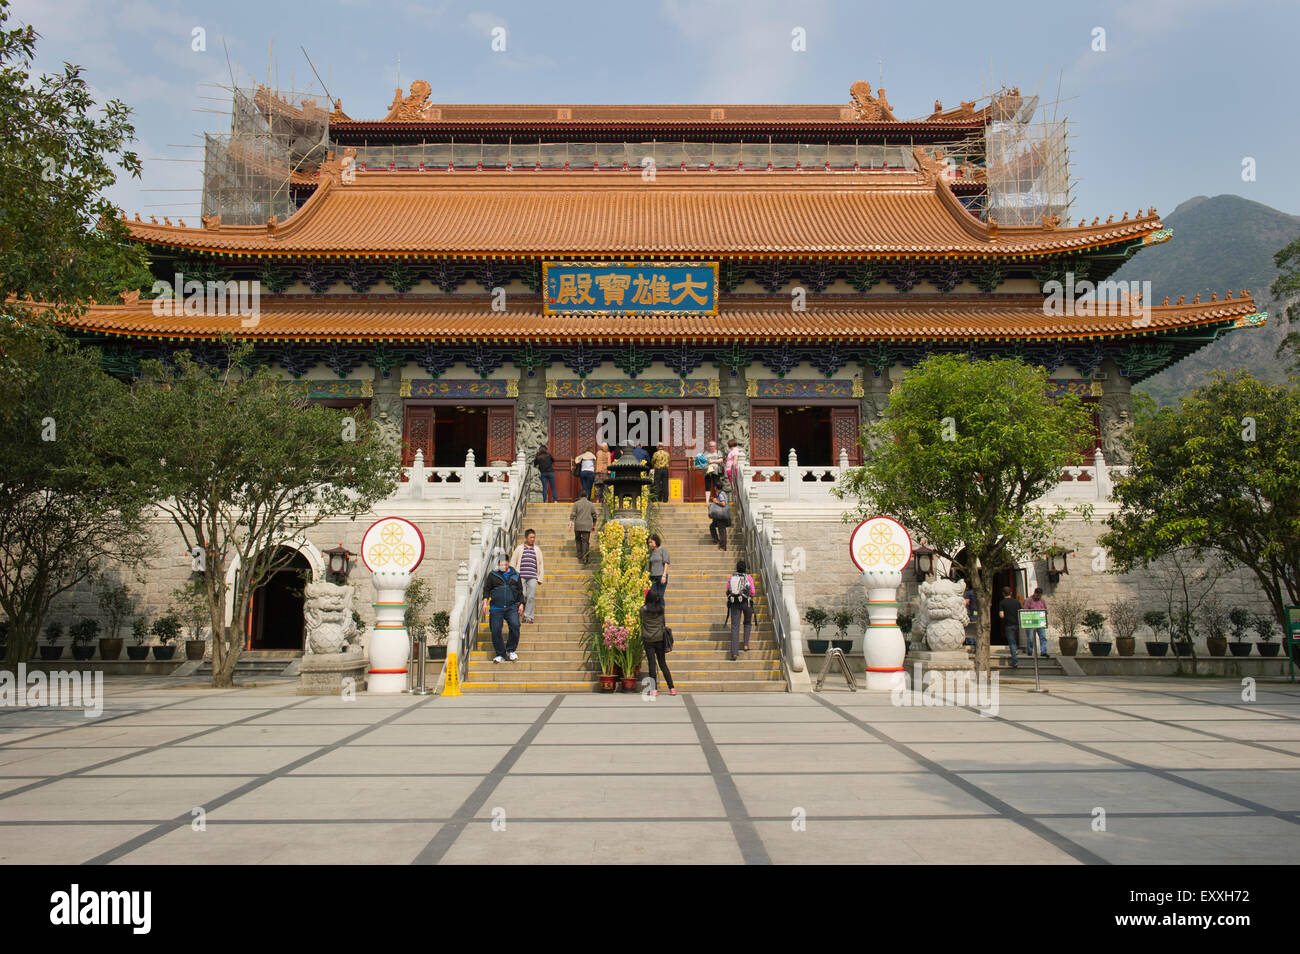 Po Lin Monastery, The Main Shrine Hall of Buddha, Lantau Island, Hong Kong, China - Stock Image